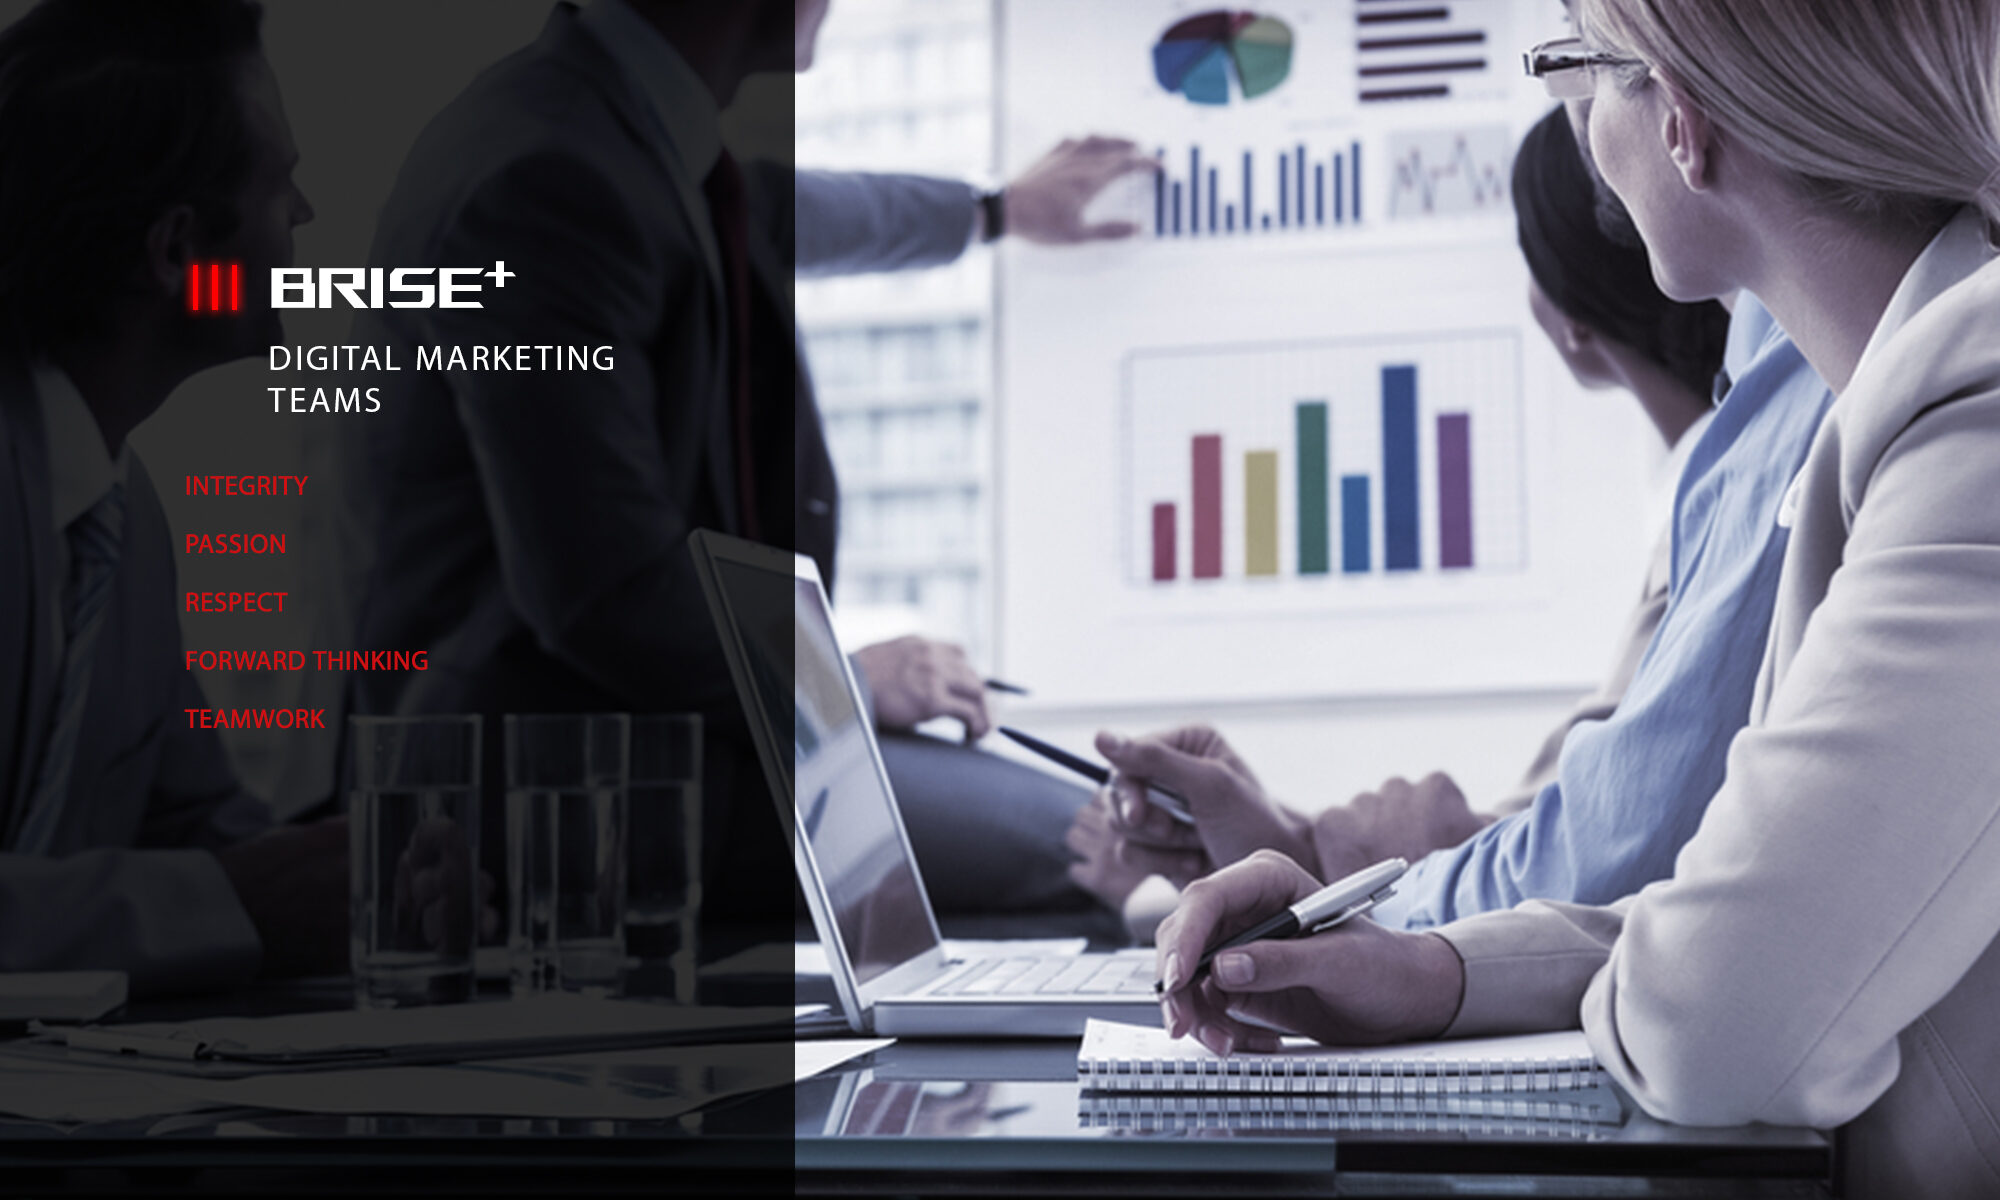 BRISE PLUS DIGITAL MARKET TEAM ON DESK AND A MAN STAND NEAR WITH BOARD